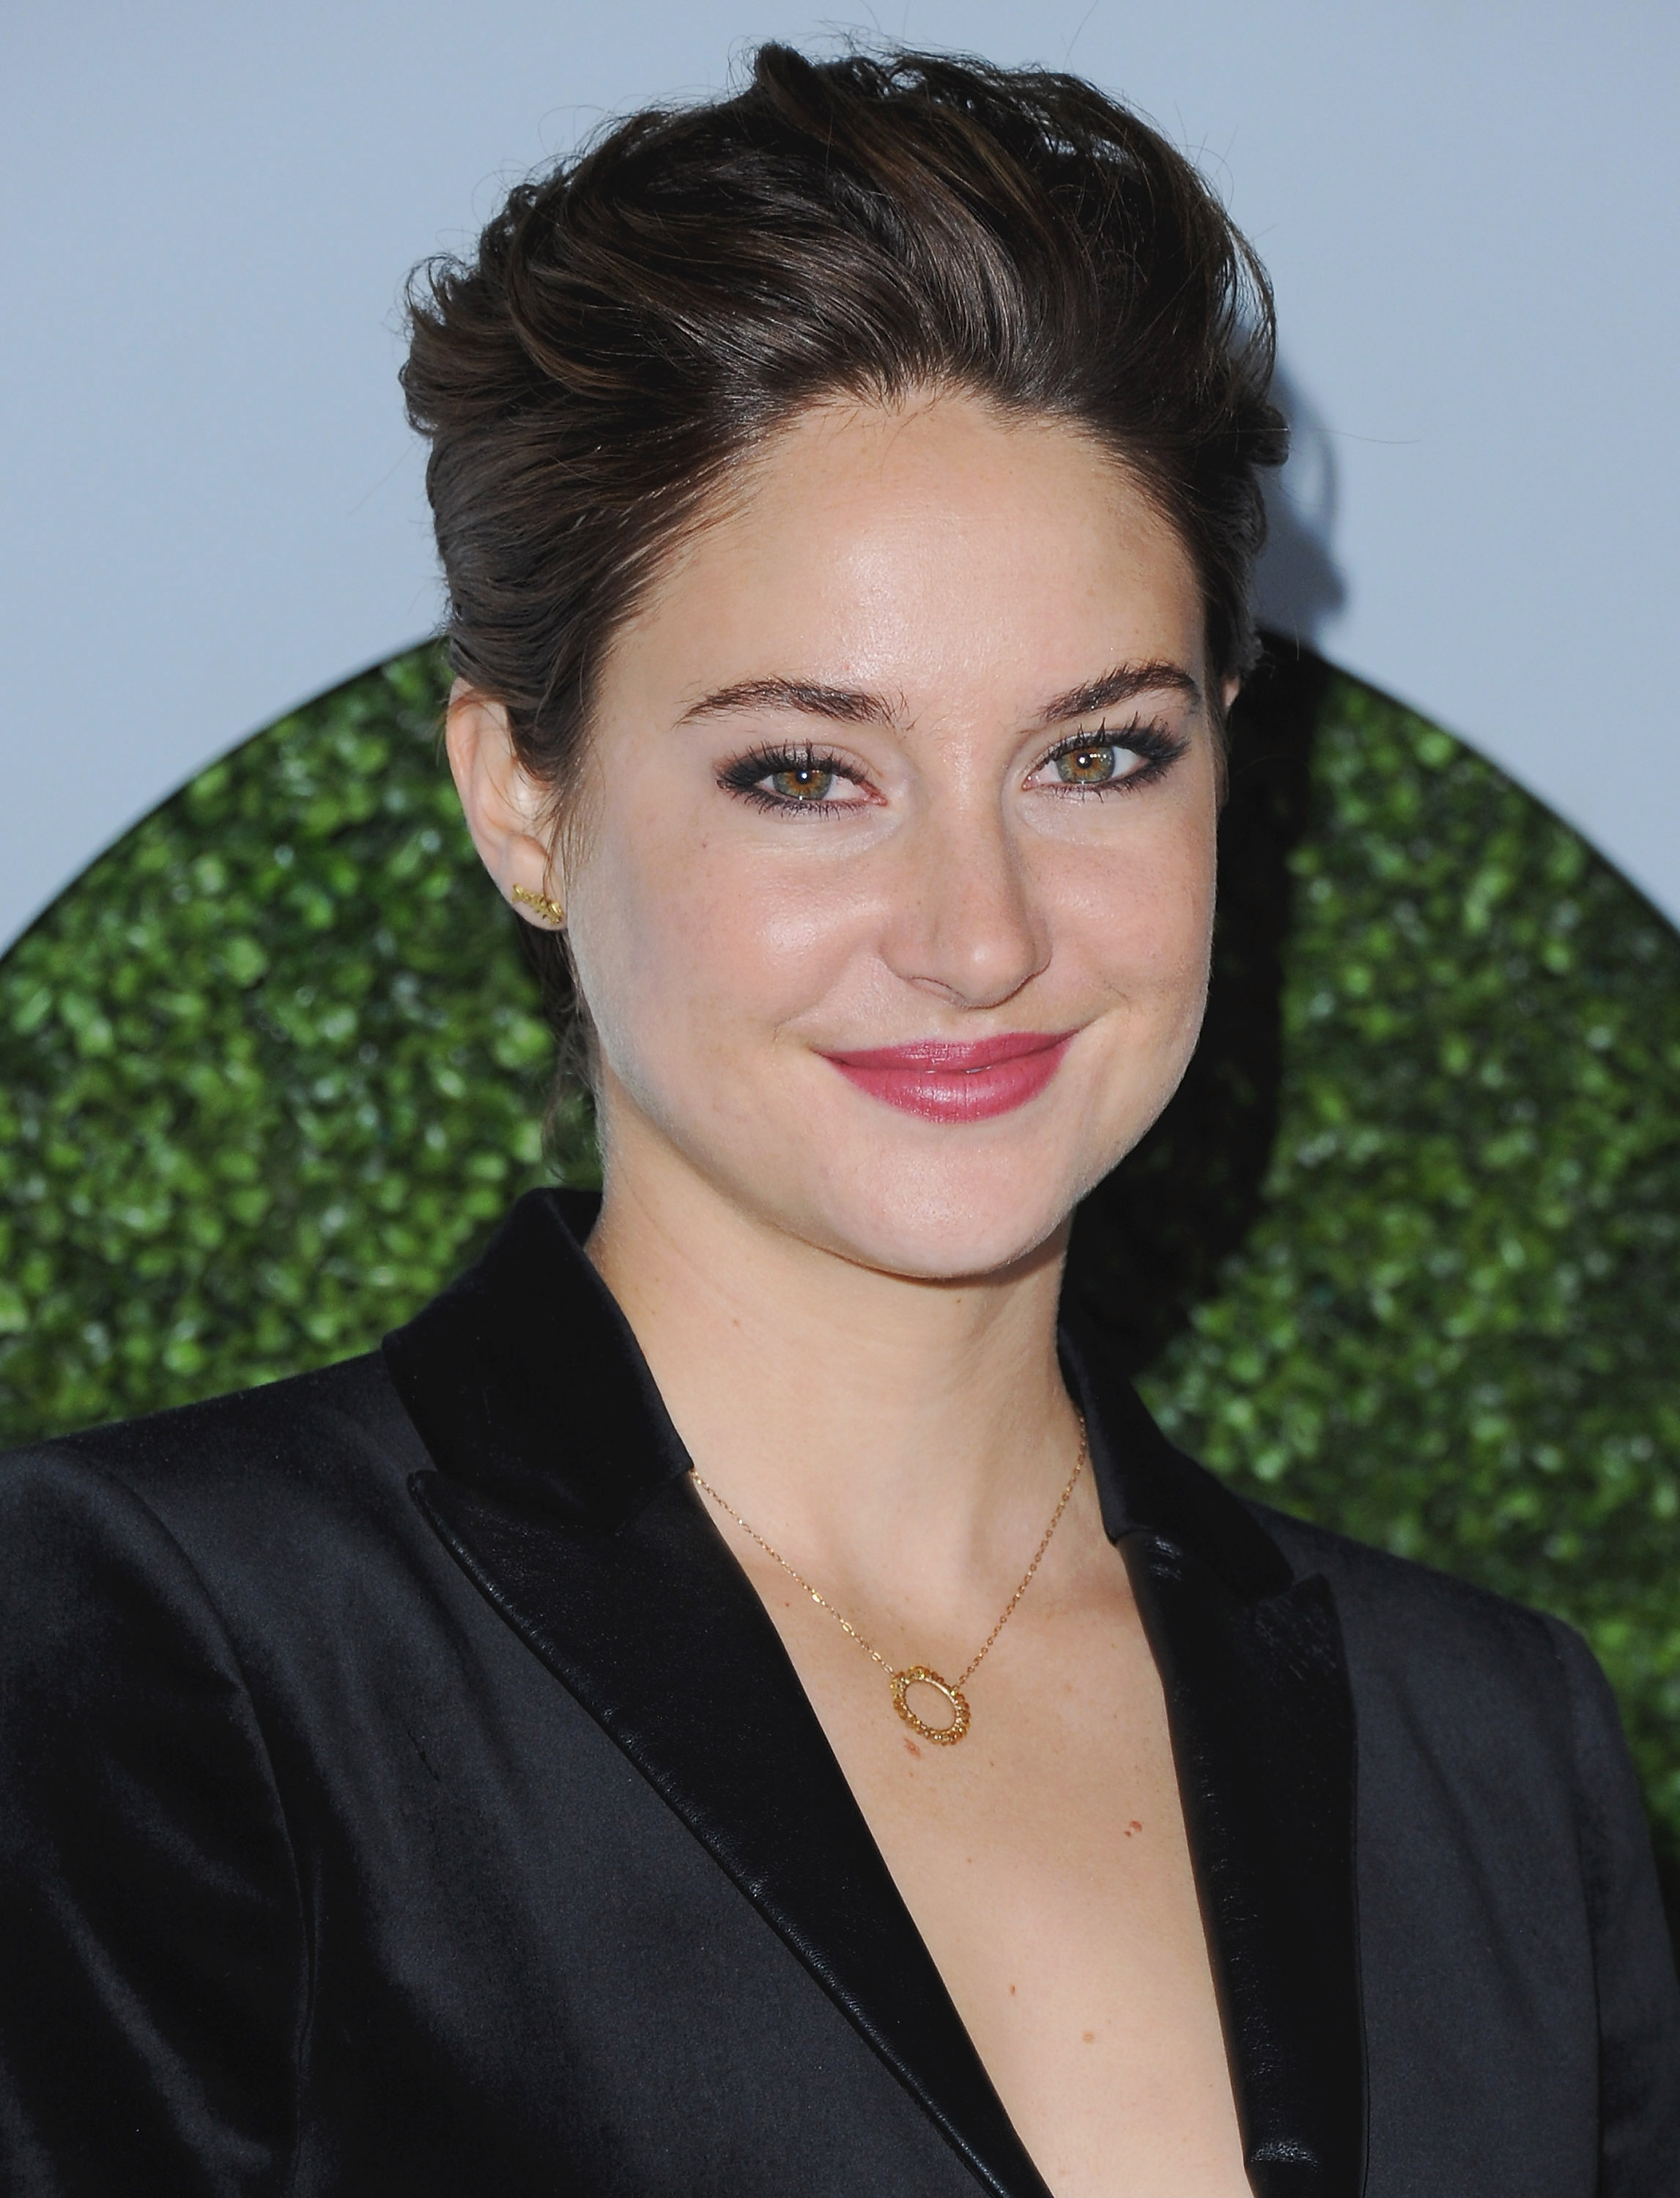 Actress Shailene Woodley arrives at the 2014 GQ Men Of The Year Party at Chateau Marmont on December 4, 2014 in Los Angeles, California.